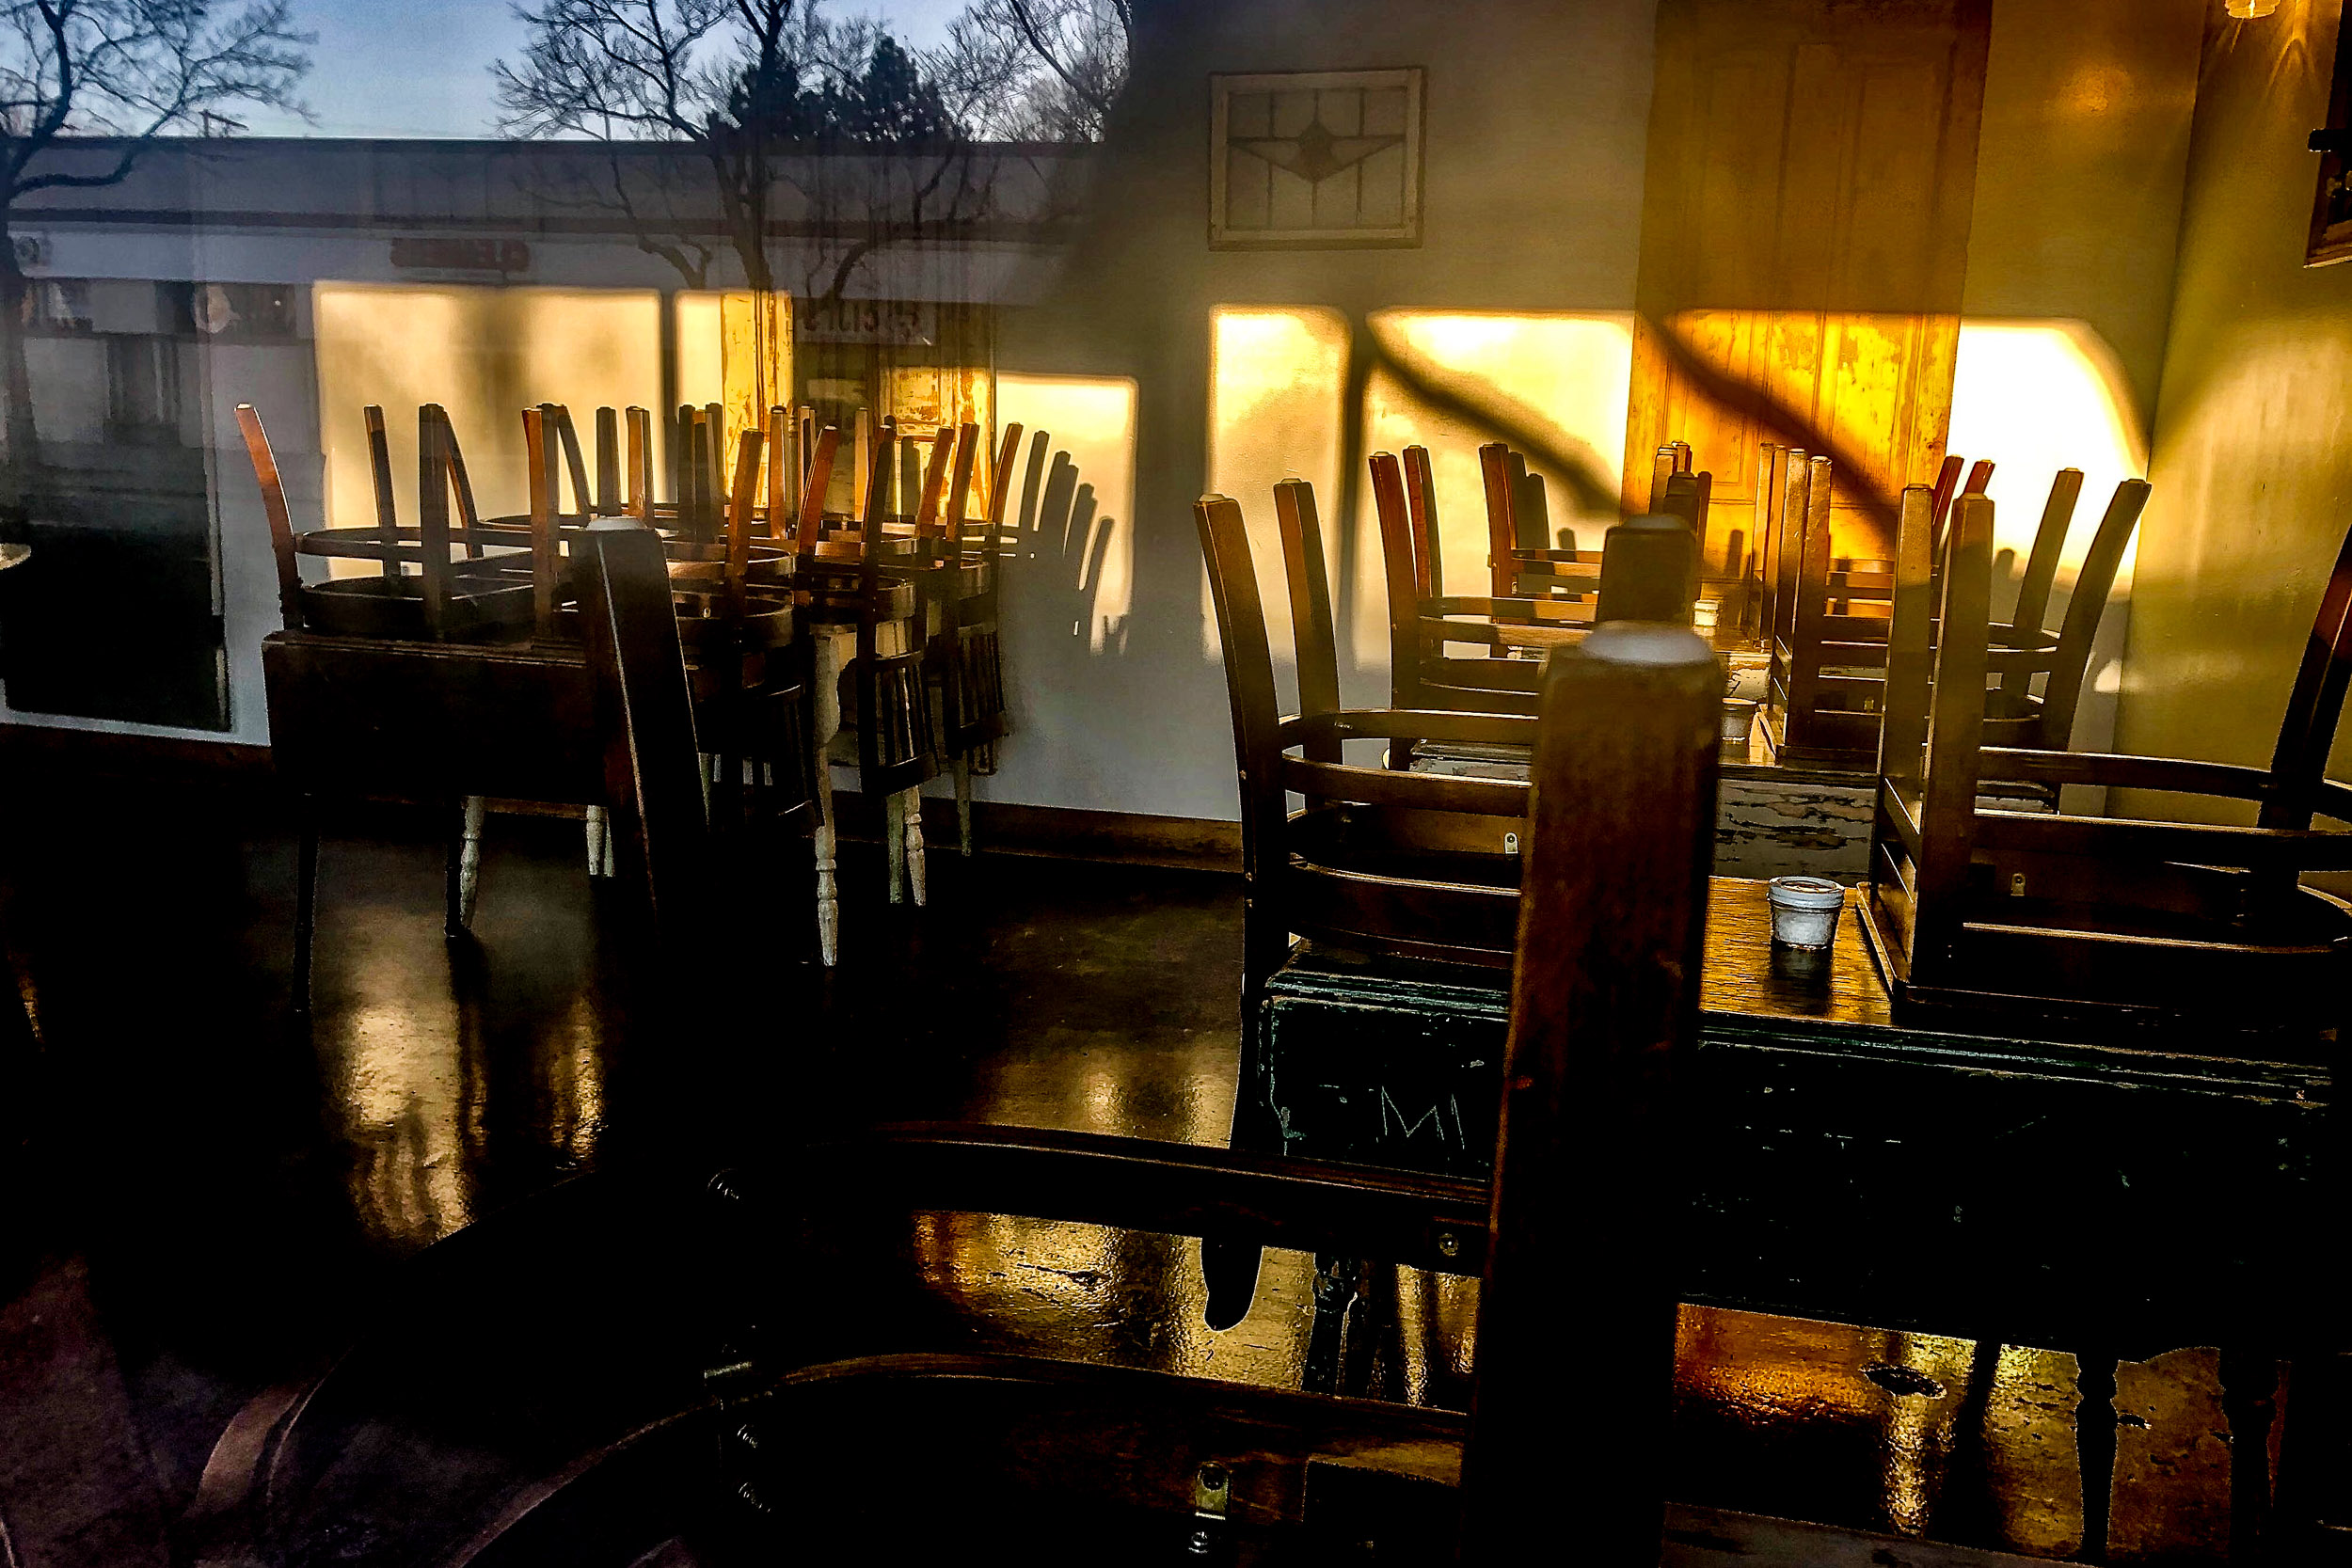 Empty Restaurant Chairs On Tables